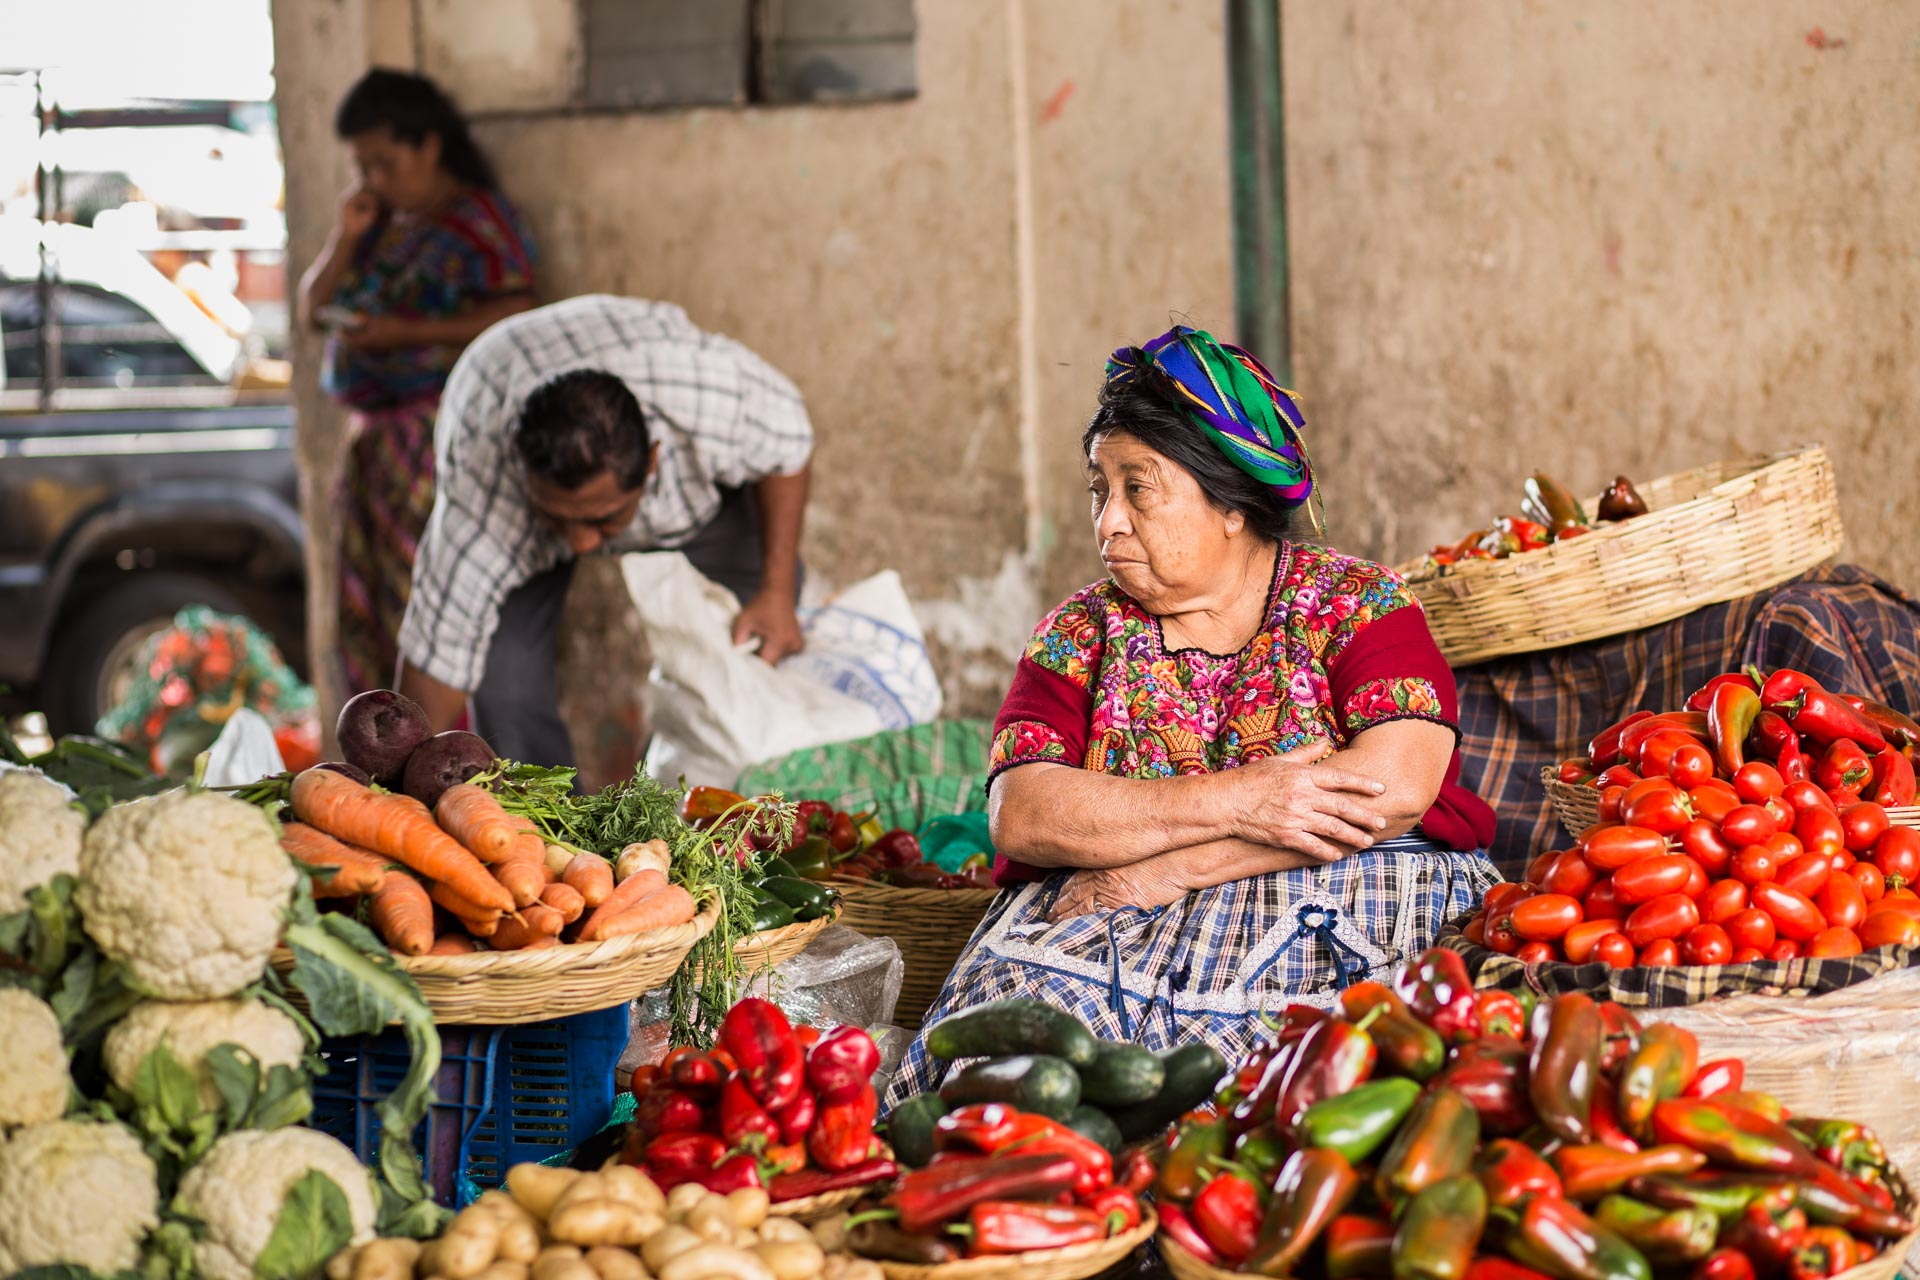 A lady selling fresh vegetables at La Terminal market in Guatemala City.